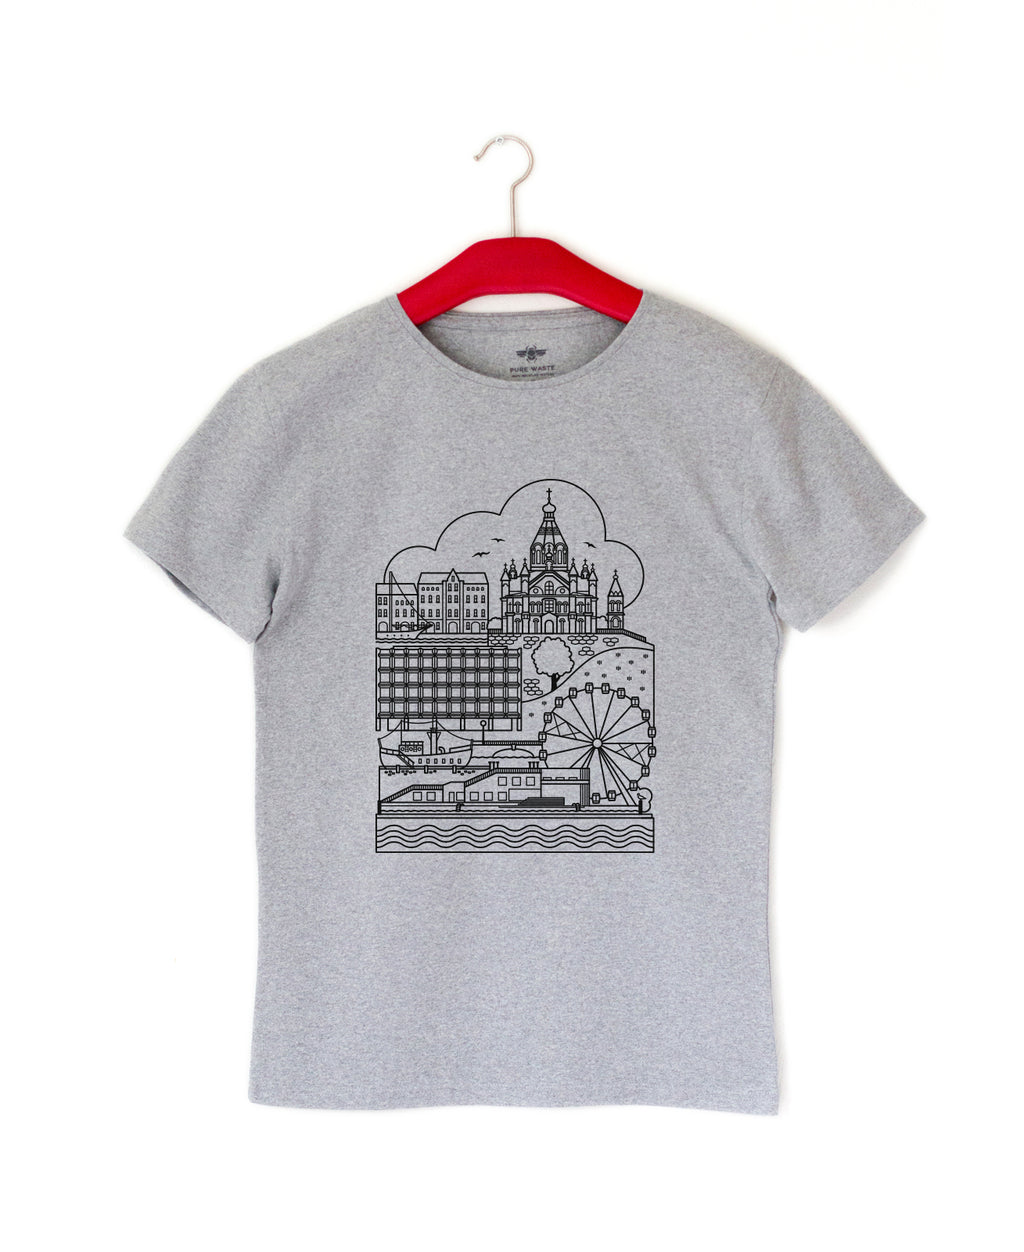 Katajanokka t-shirt, adults